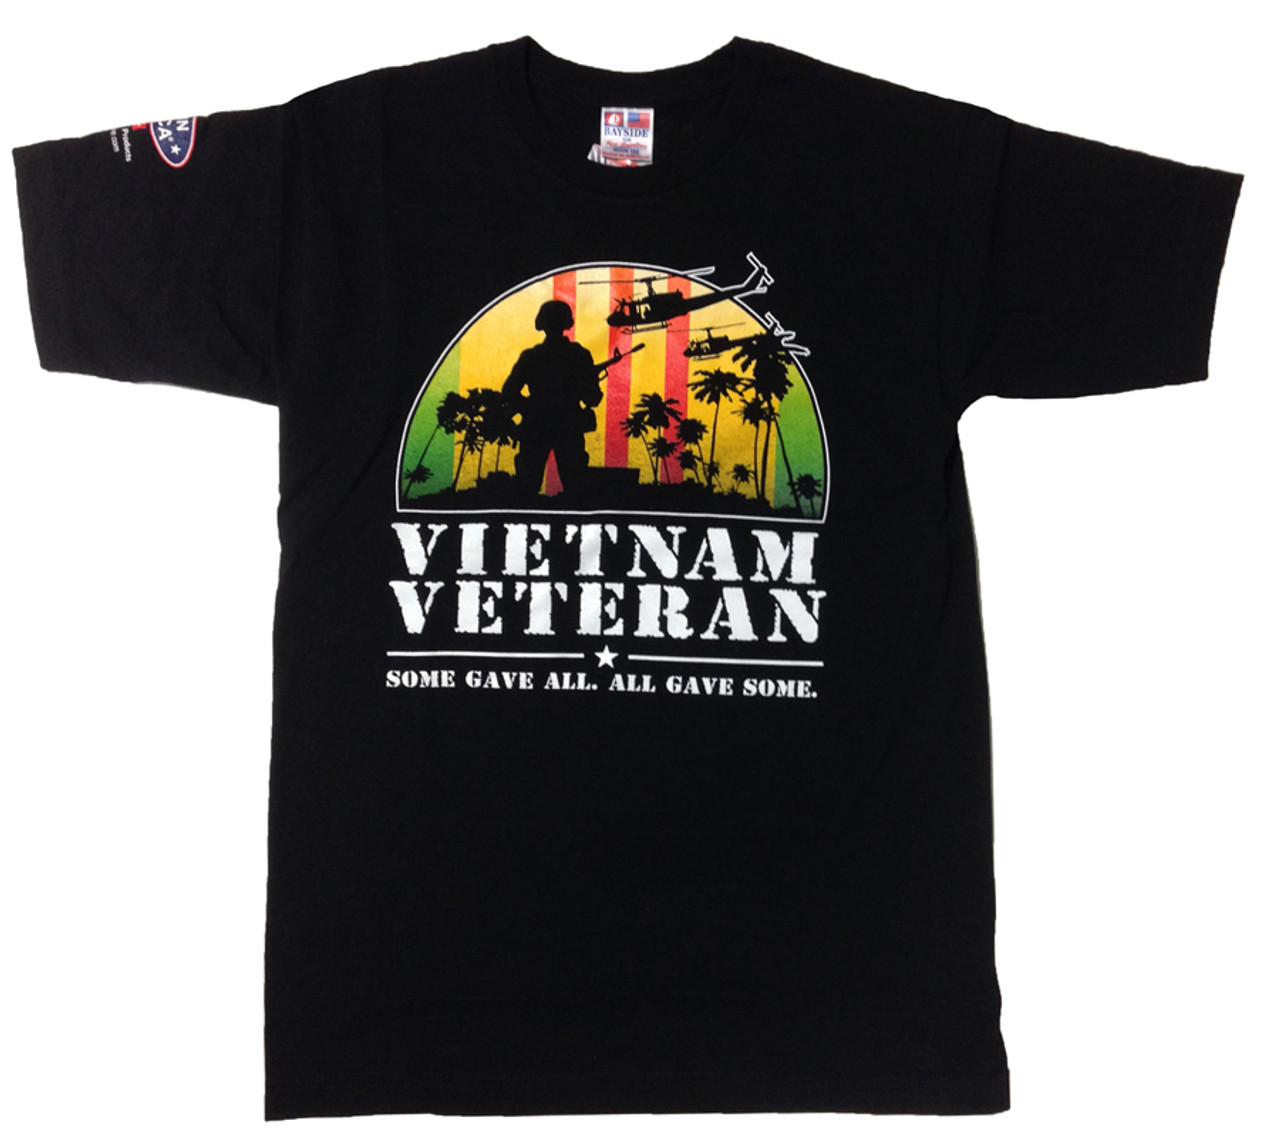 0a8d9811 Made In America Store Vietnam Veteran Tee